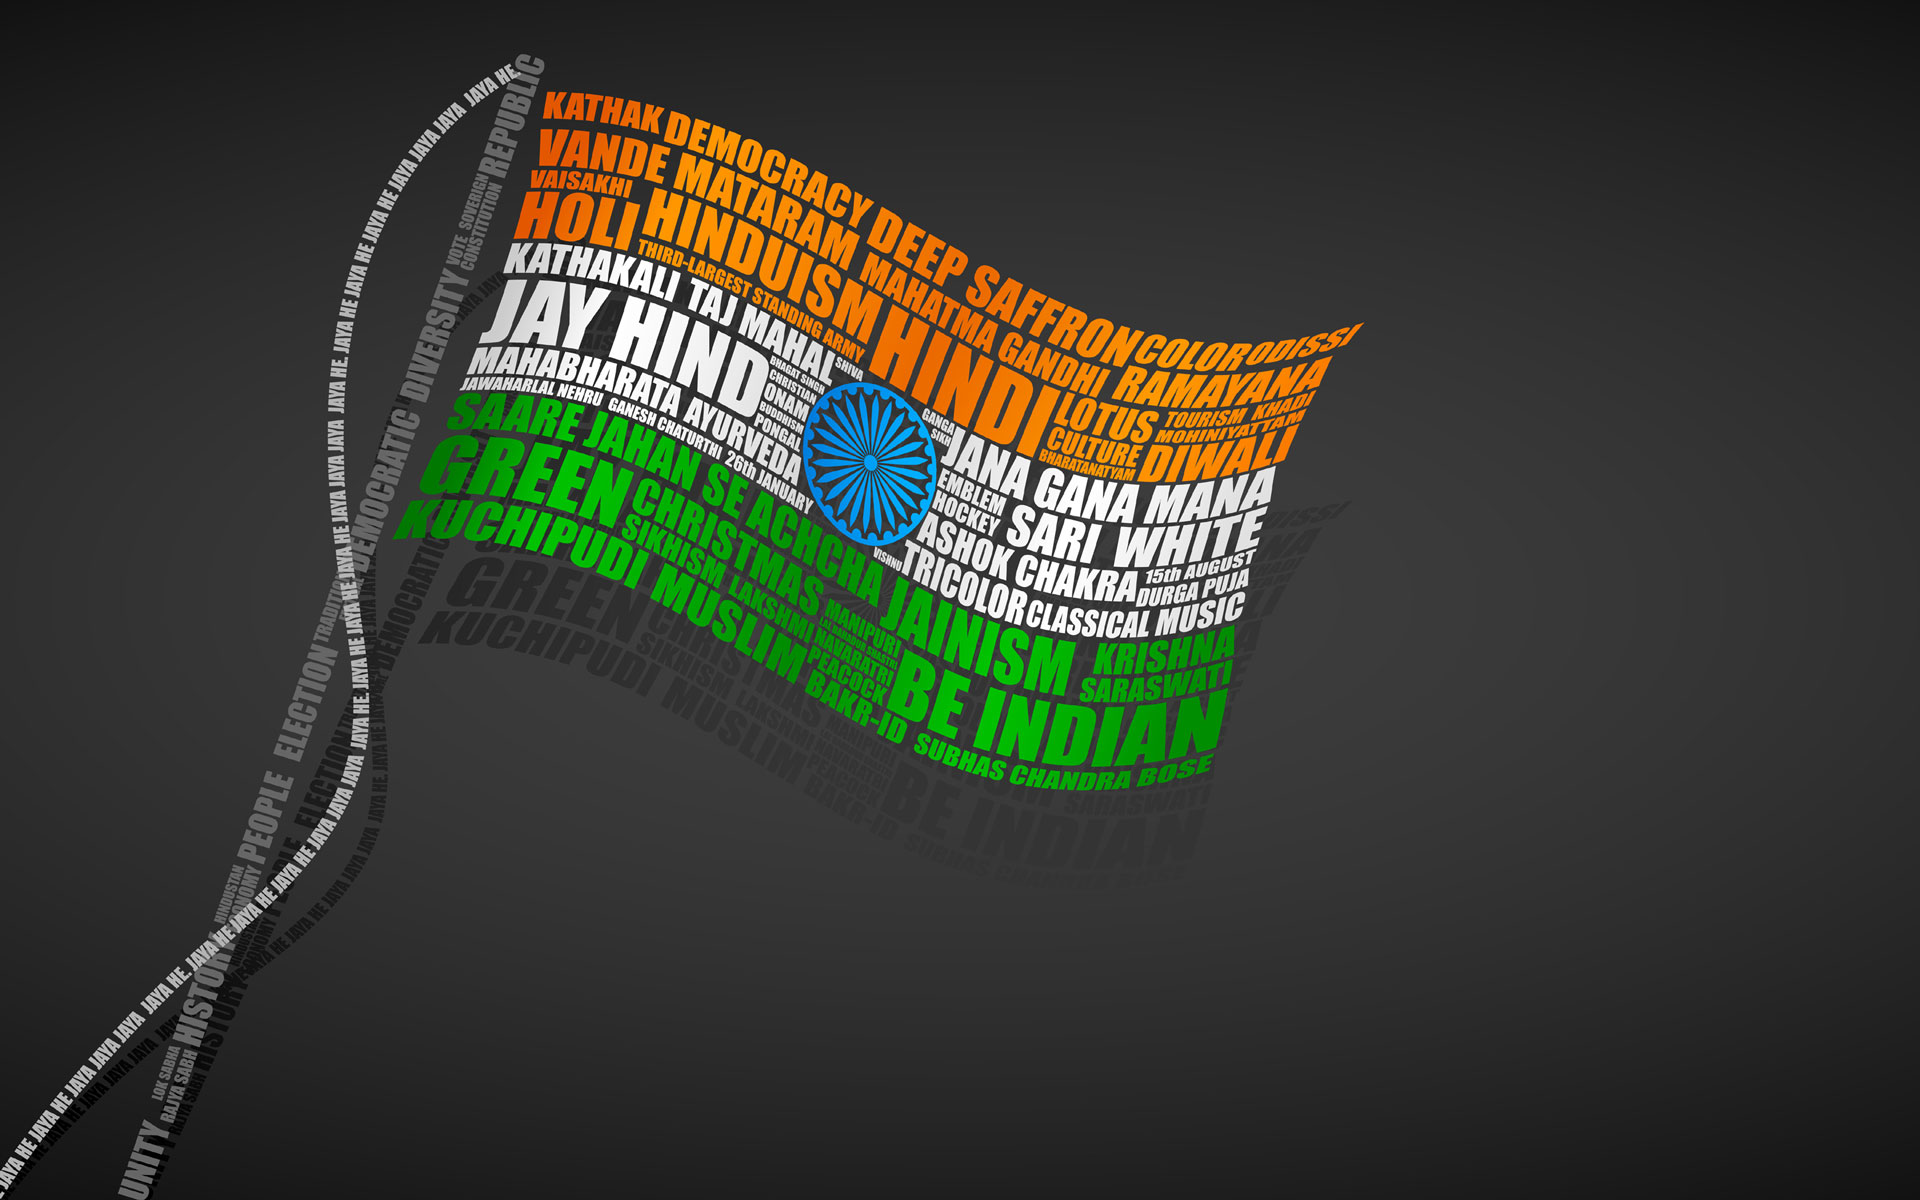 Indian Flag Hd Wallpaper 1080p: Indian Flag HD Images Wallpapers Free Download